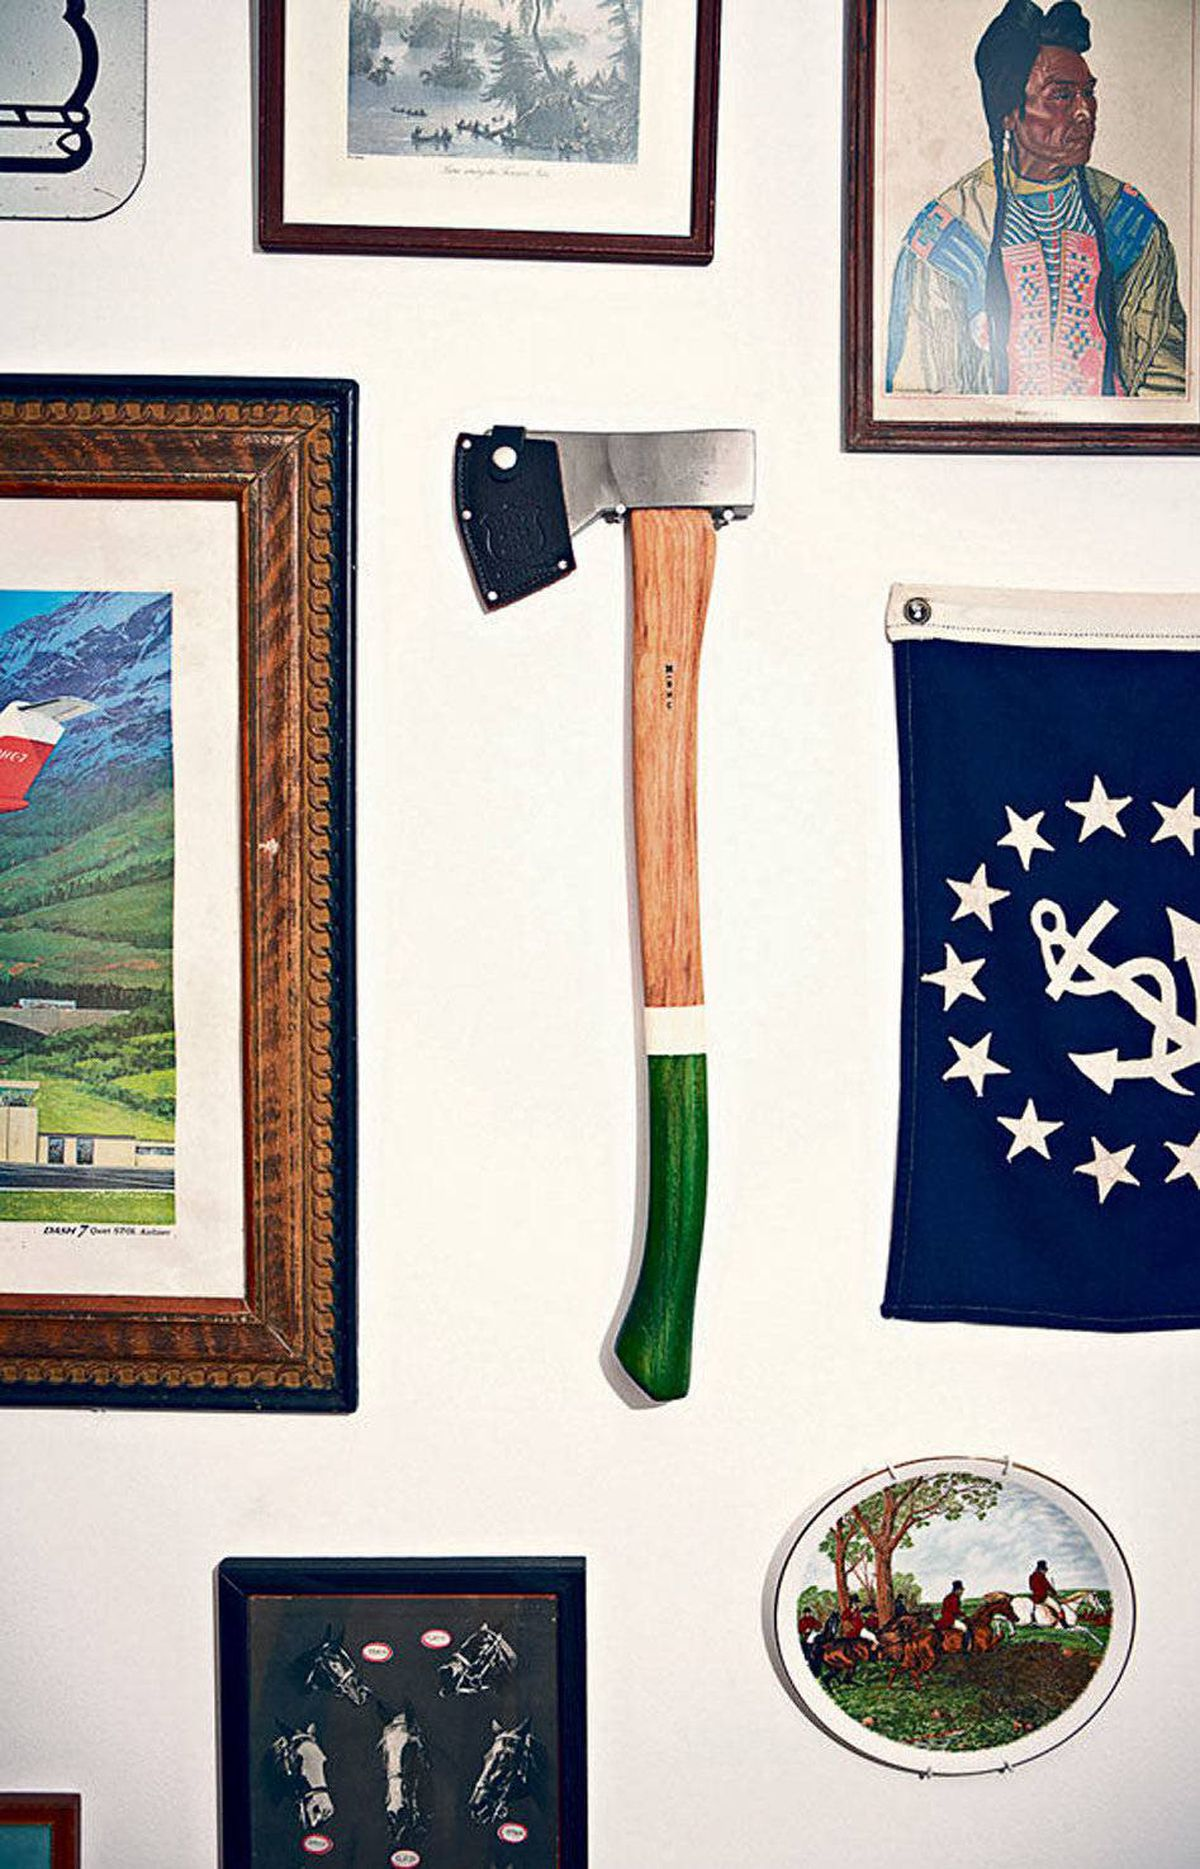 An axe is one of the many flea market finds showcased gallery-style to heighten the haute-rustic vibe.